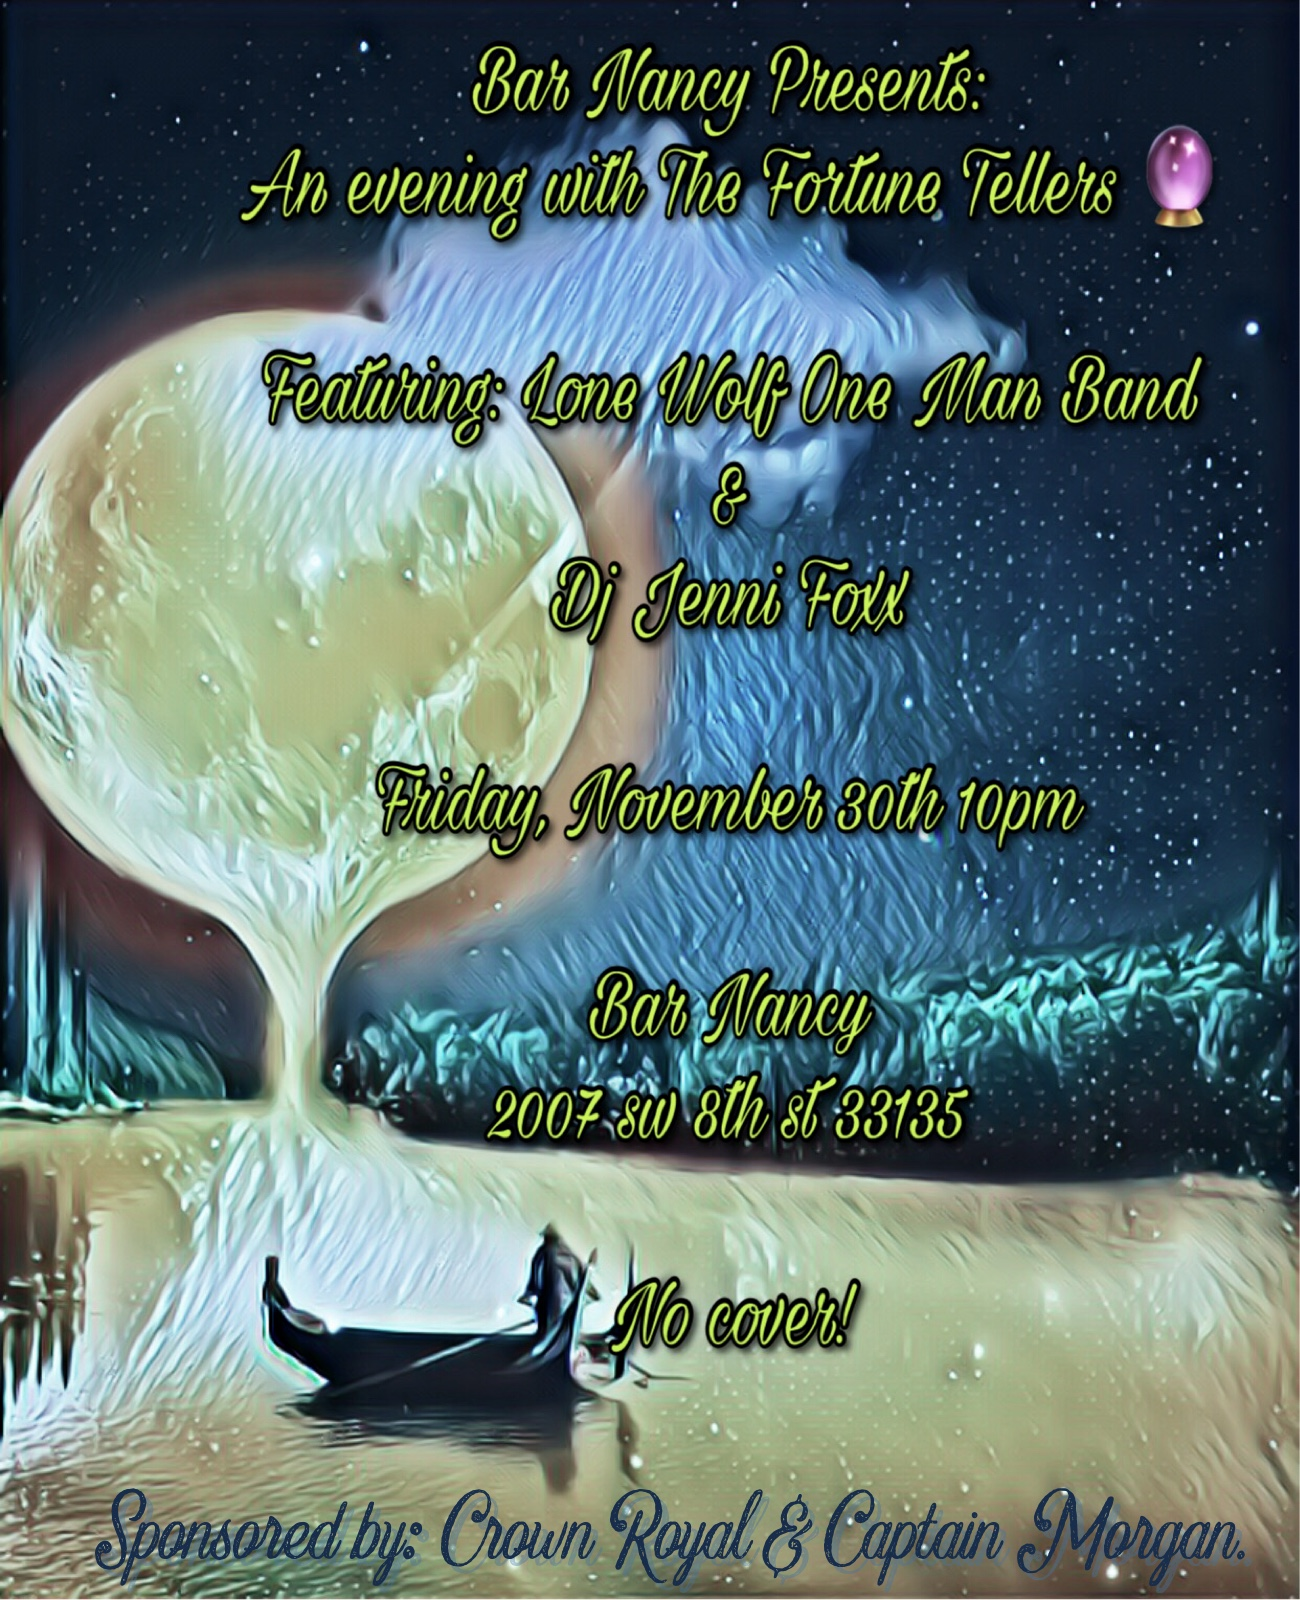 The Fortune Tellers Featuring Lone Wolf One Man Band - DJ Jenni Foxx - Friday NOV 30th - 10PM - Sponsored by Crown Royal & Captain Morgan